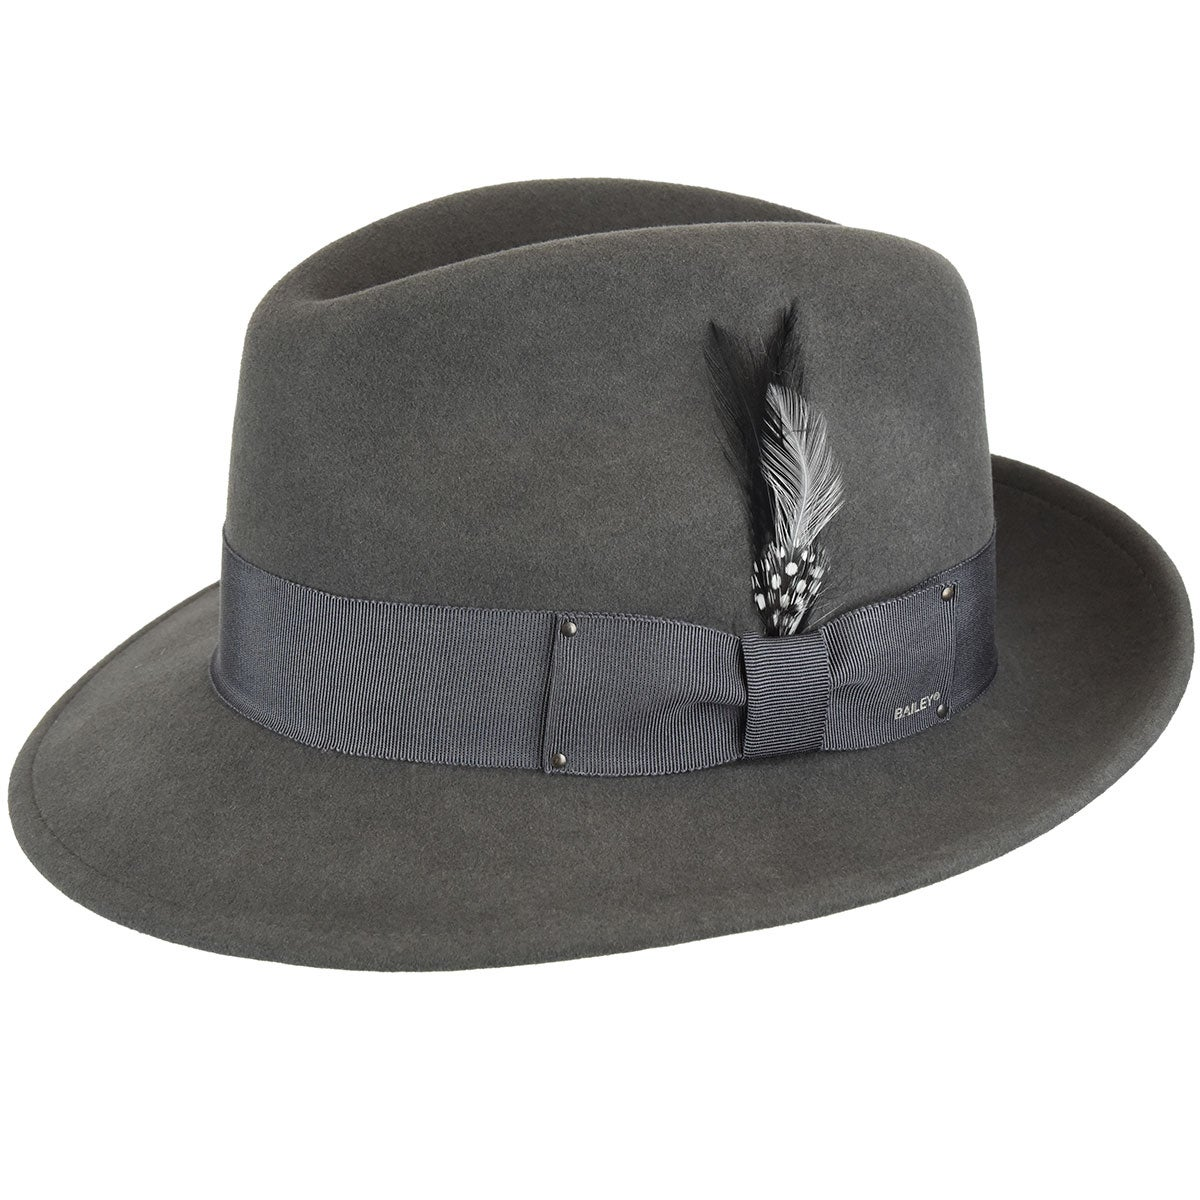 1940s Mens Hats | Fedora, Homburg, Pork Pie Hats Blixen LiteFelt Fedora $73.50 AT vintagedancer.com